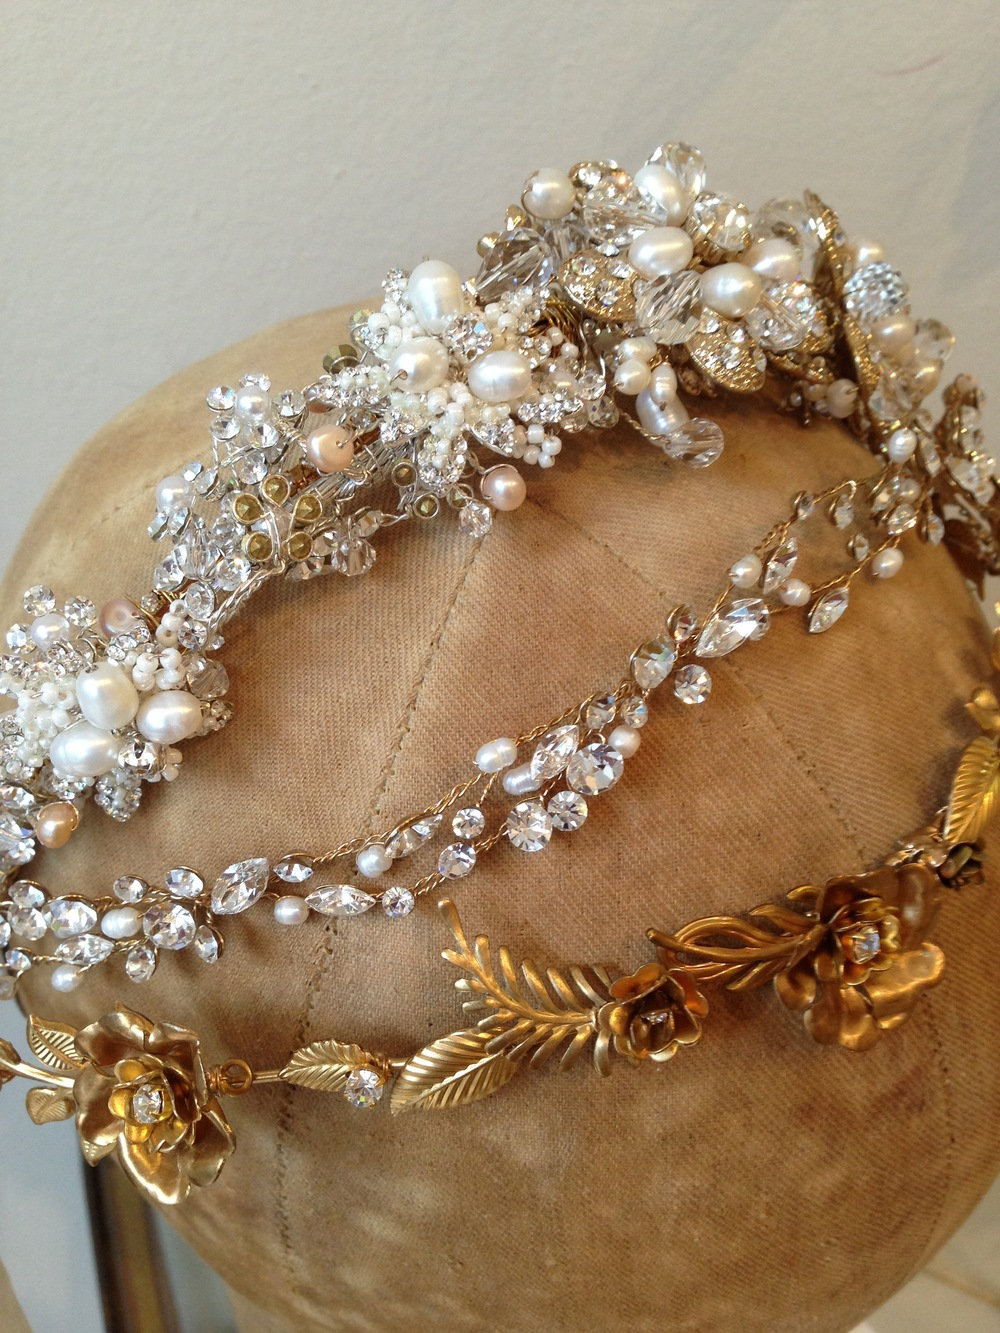 These beautifully decadent headpieces are just what you need to top off your look! From textured glitz and elegant sophistication to boho floral, we try to cover all the bases. These head pieces are by Twigs & Honey, Untamed Petals, and Mignonne Handmade.